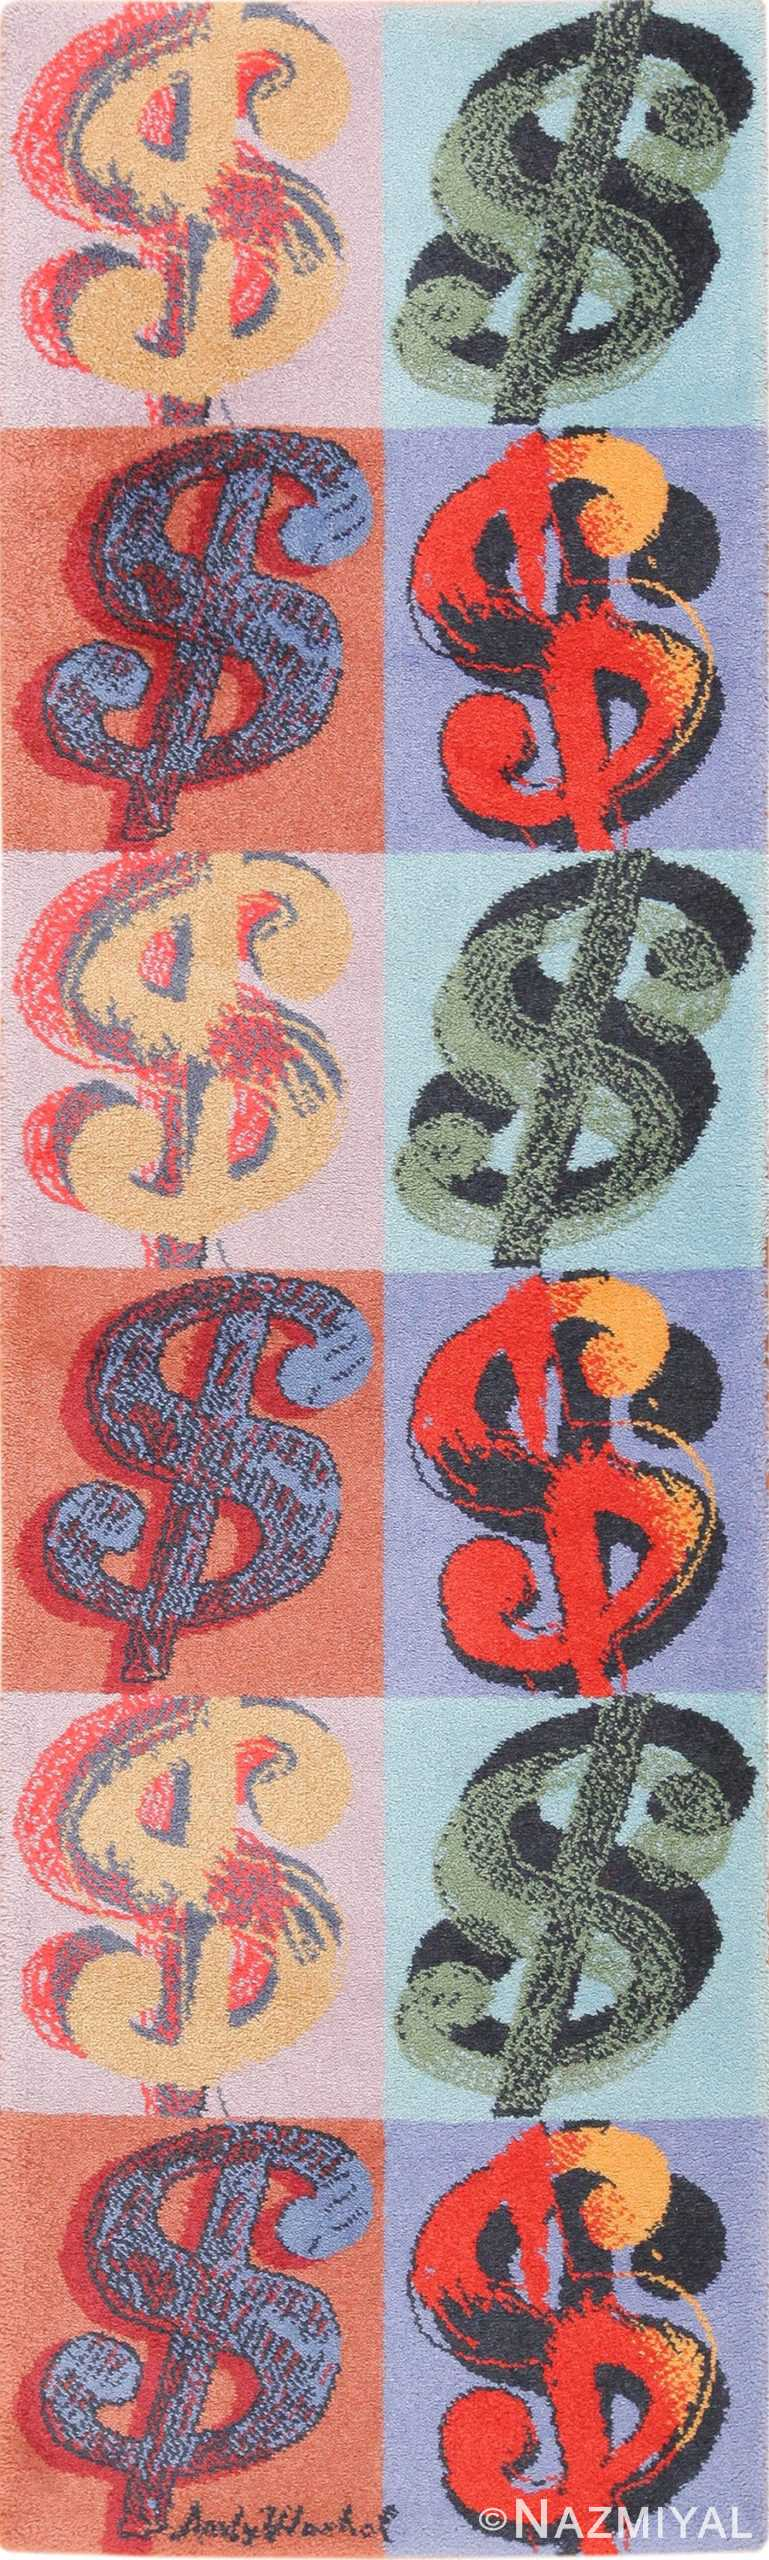 Scandinavian Ege Vintage Andy Warhol Dollar Sign Art Runner Rug 49792 by Nazmiyal